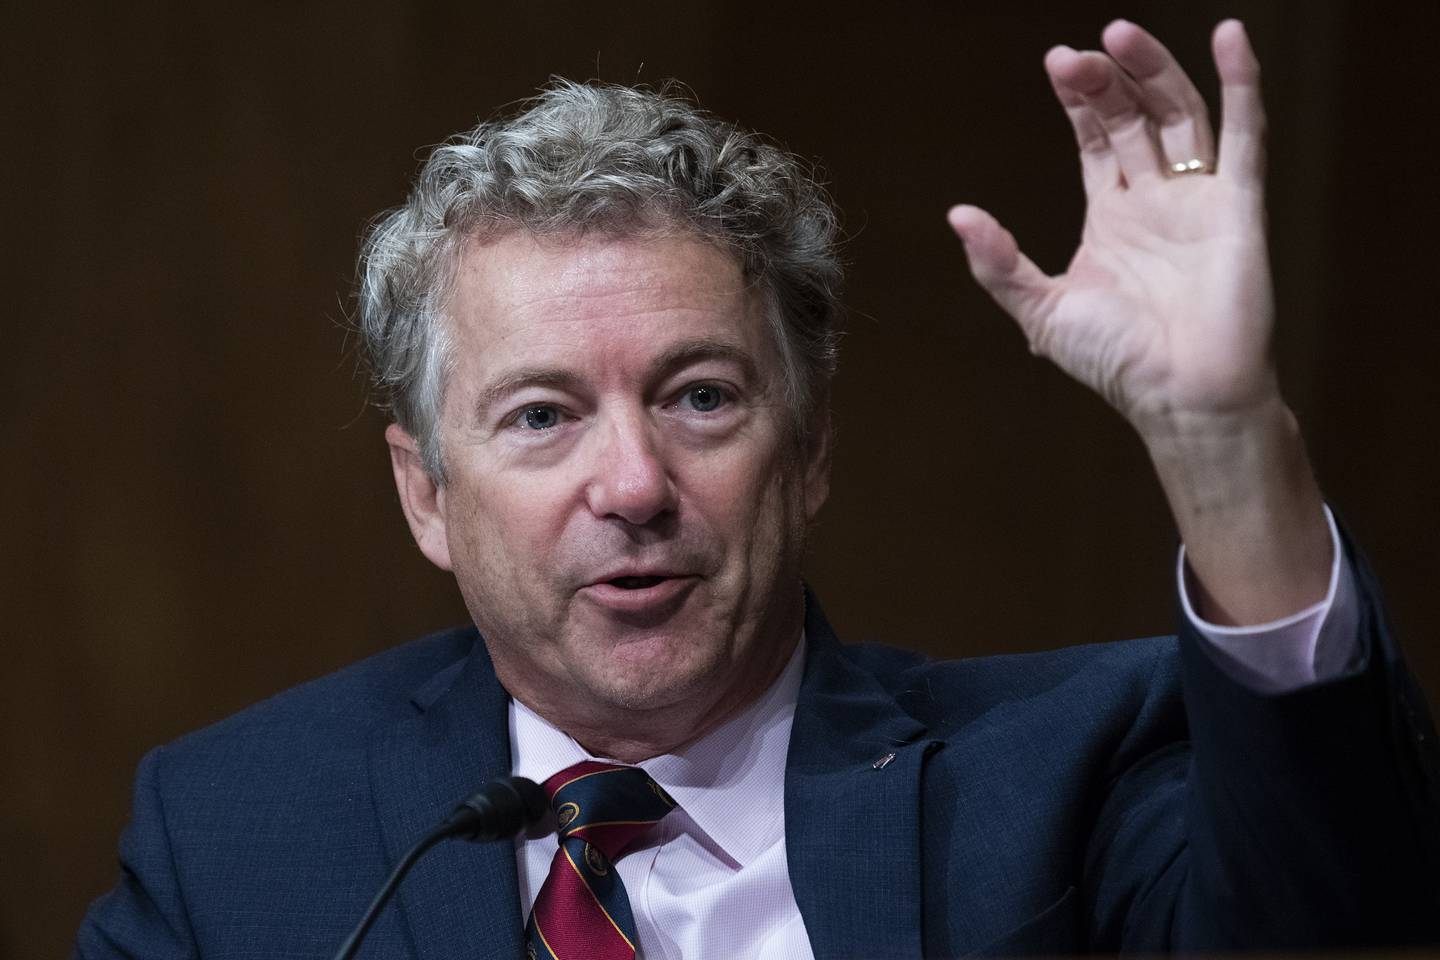 In this Sept. 24, 2020, file photo, Sen. Rand Paul, R-Ky., speaks during a Senate Homeland Security and Governmental Affairs Committee hearing on Capitol Hill in Washington.